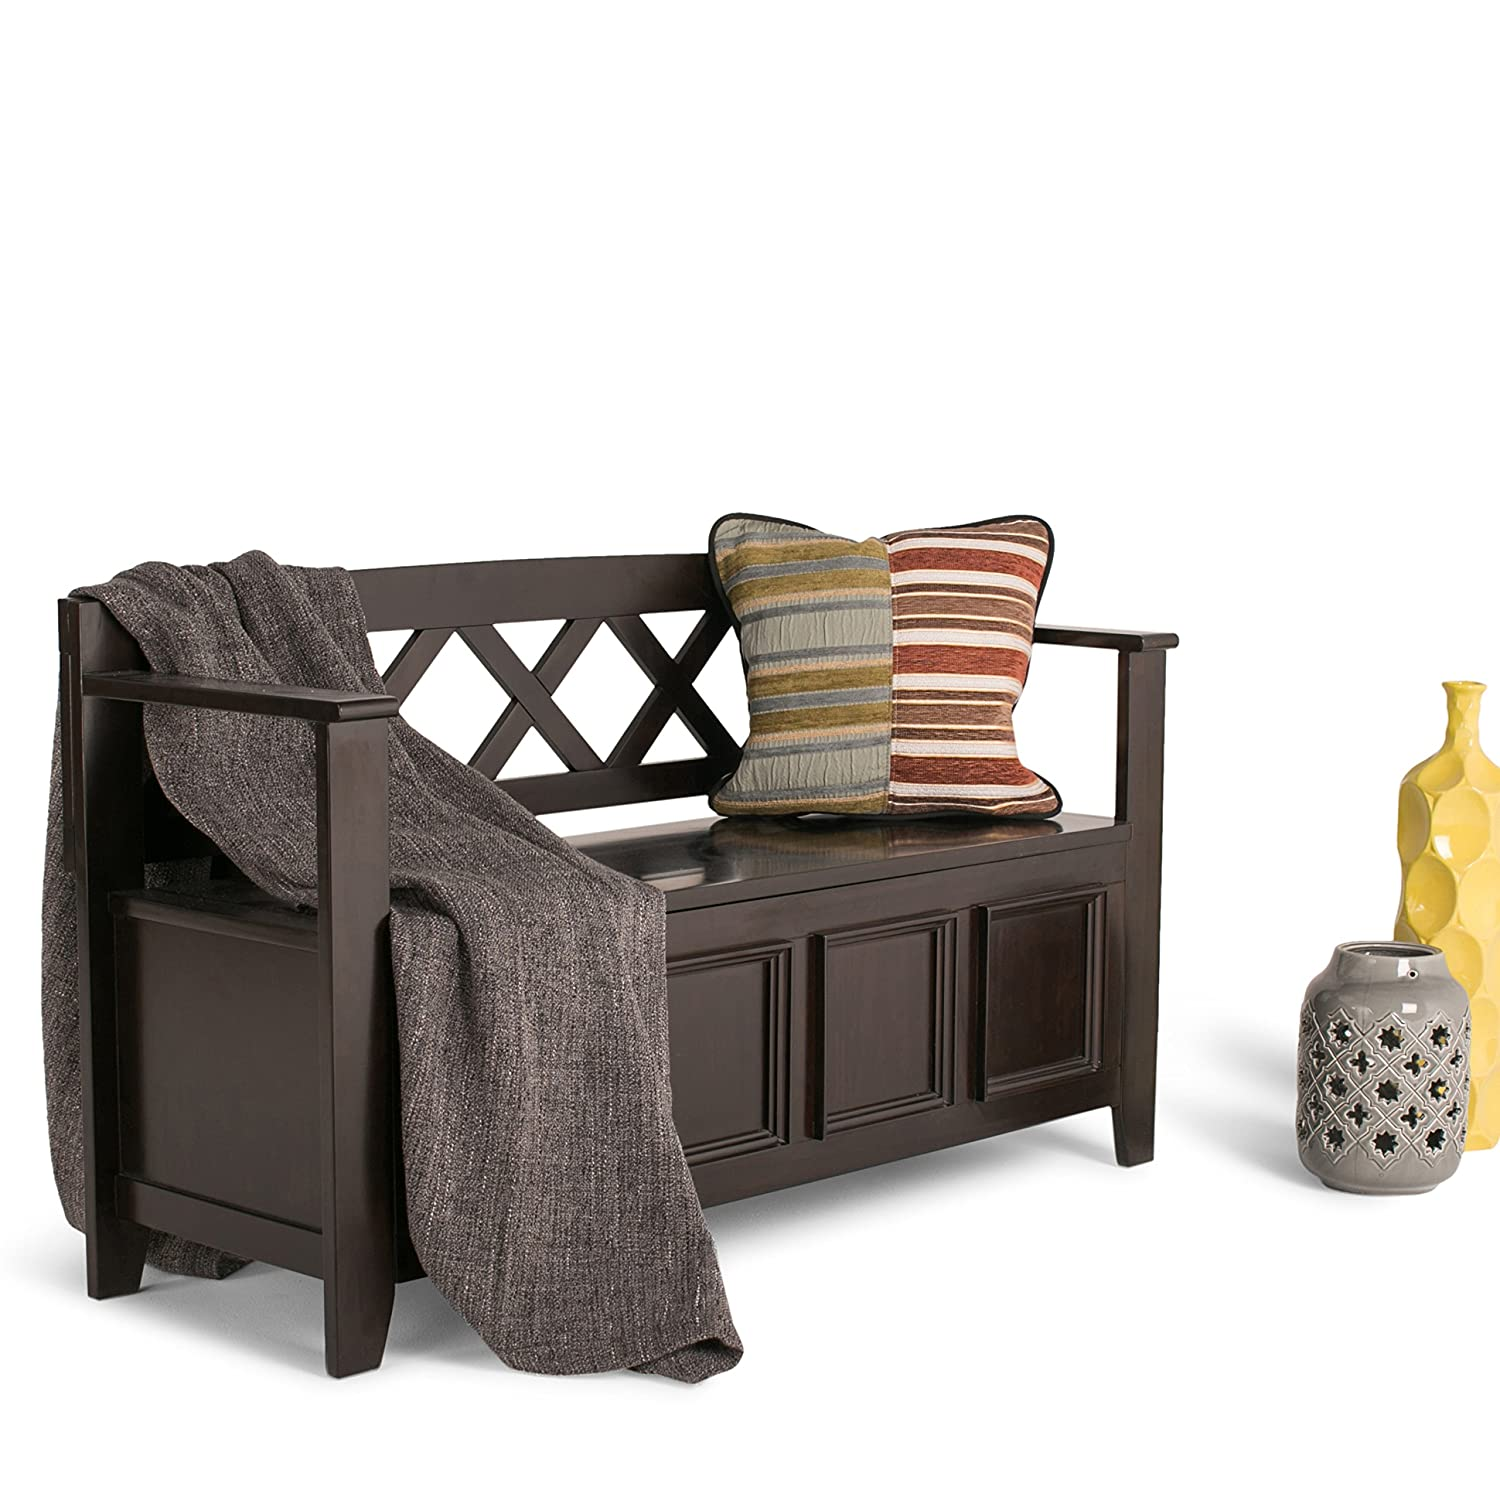 Design Entryway Bench amazon com simpli home amherst entryway storage bench dark brown kitchen dining